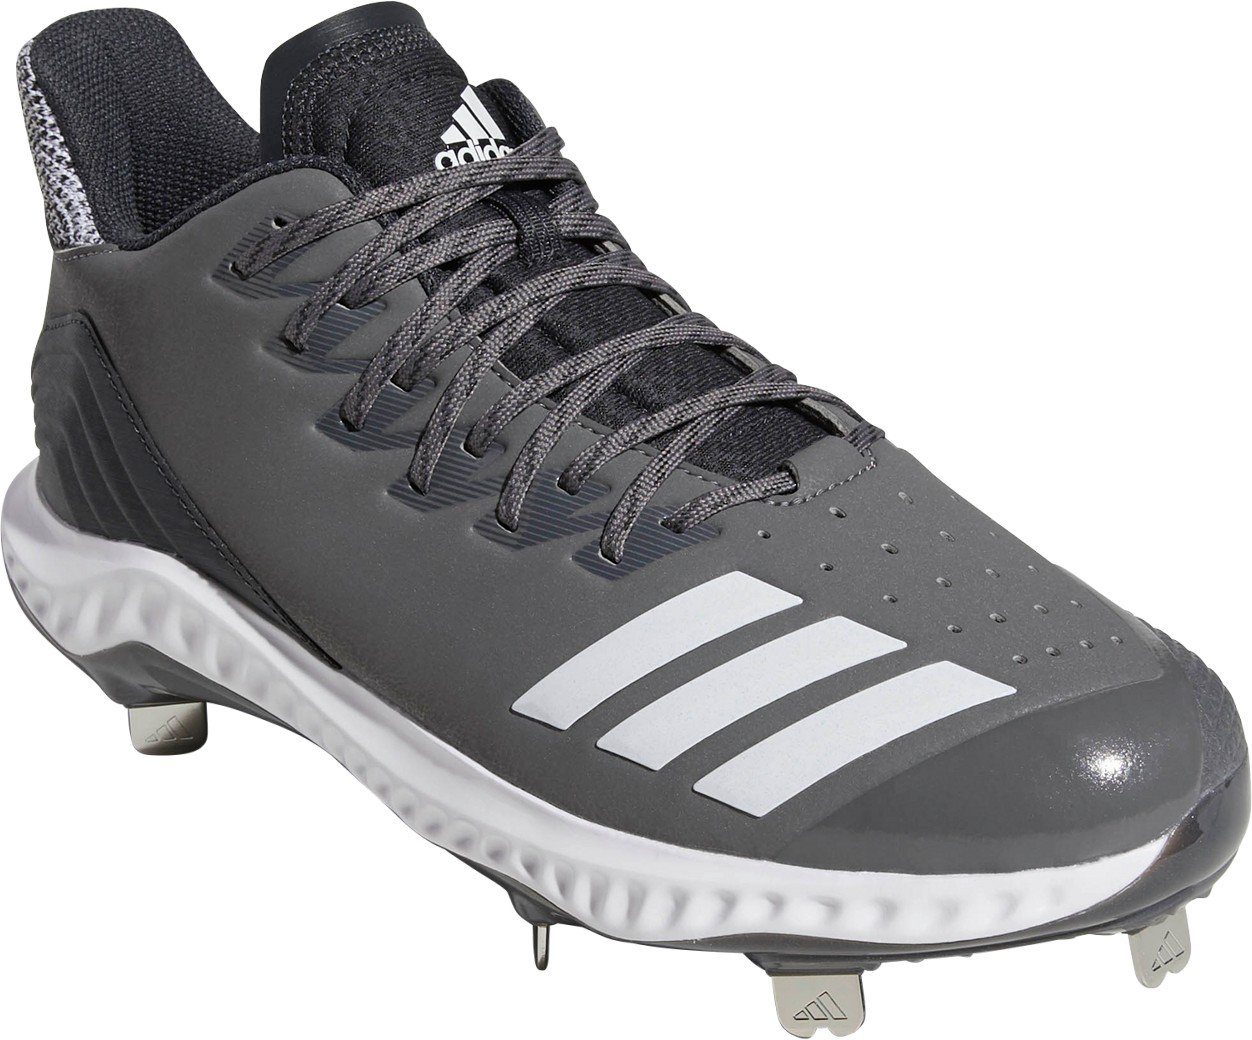 559bd59a8 adidas Men s Icon Bounce Low Metal Baseball Cleats